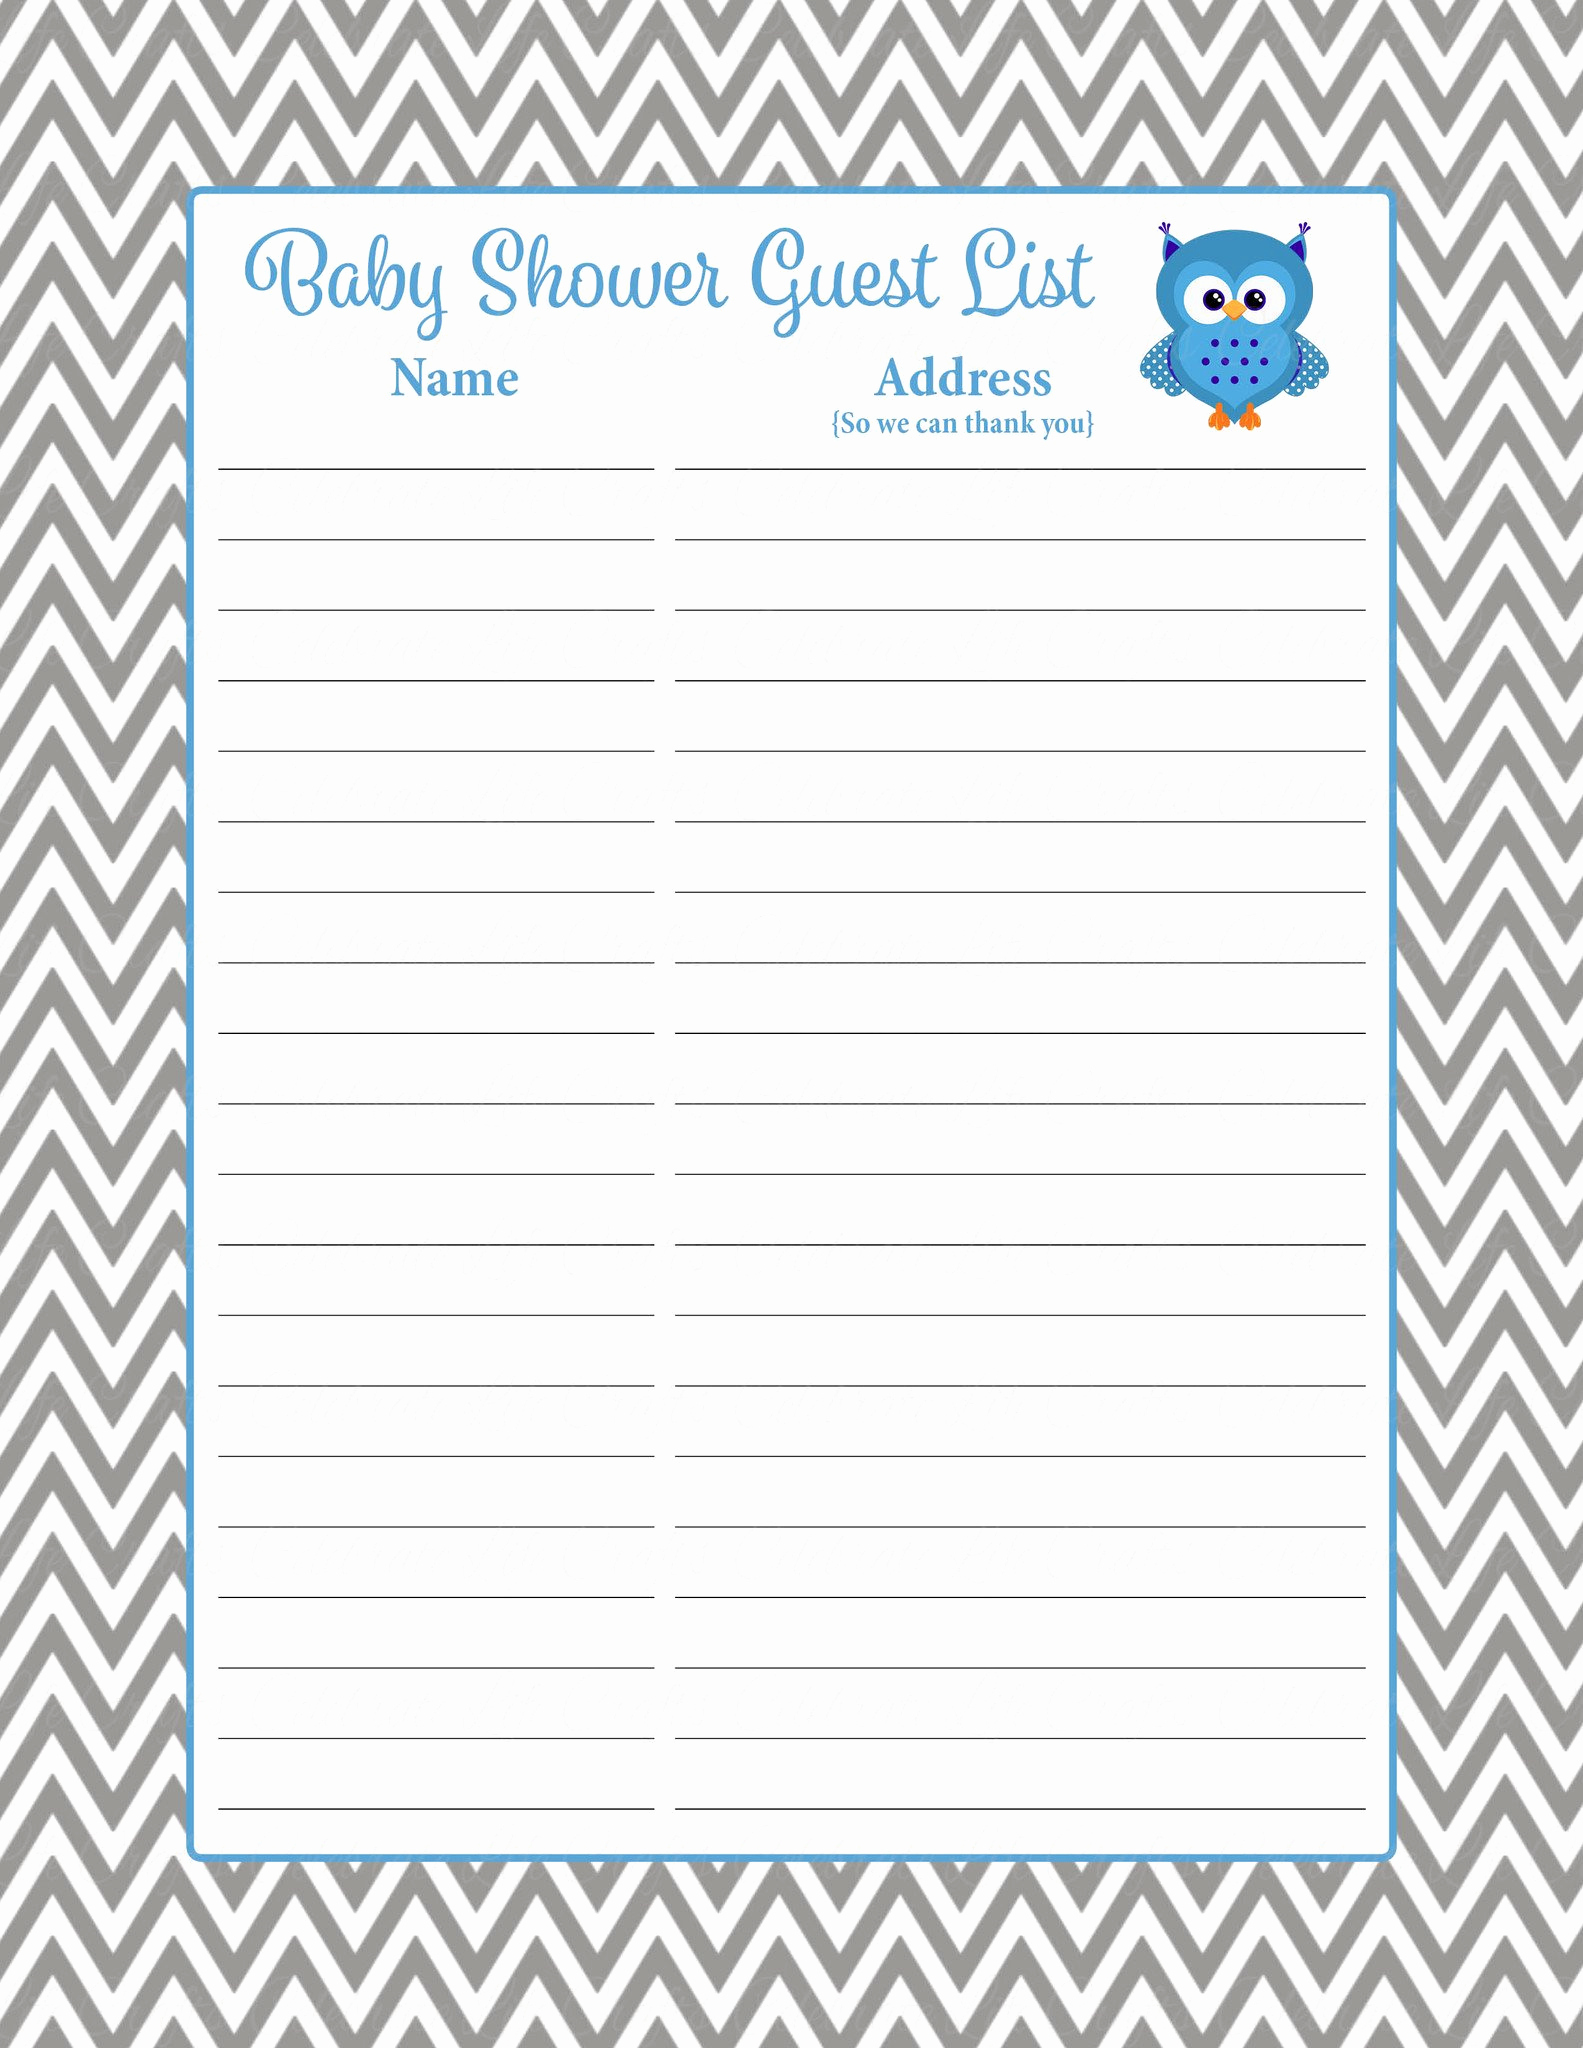 Baby Shower Invitation List Luxury Baby Shower Guest List Set Owl Baby Shower theme for